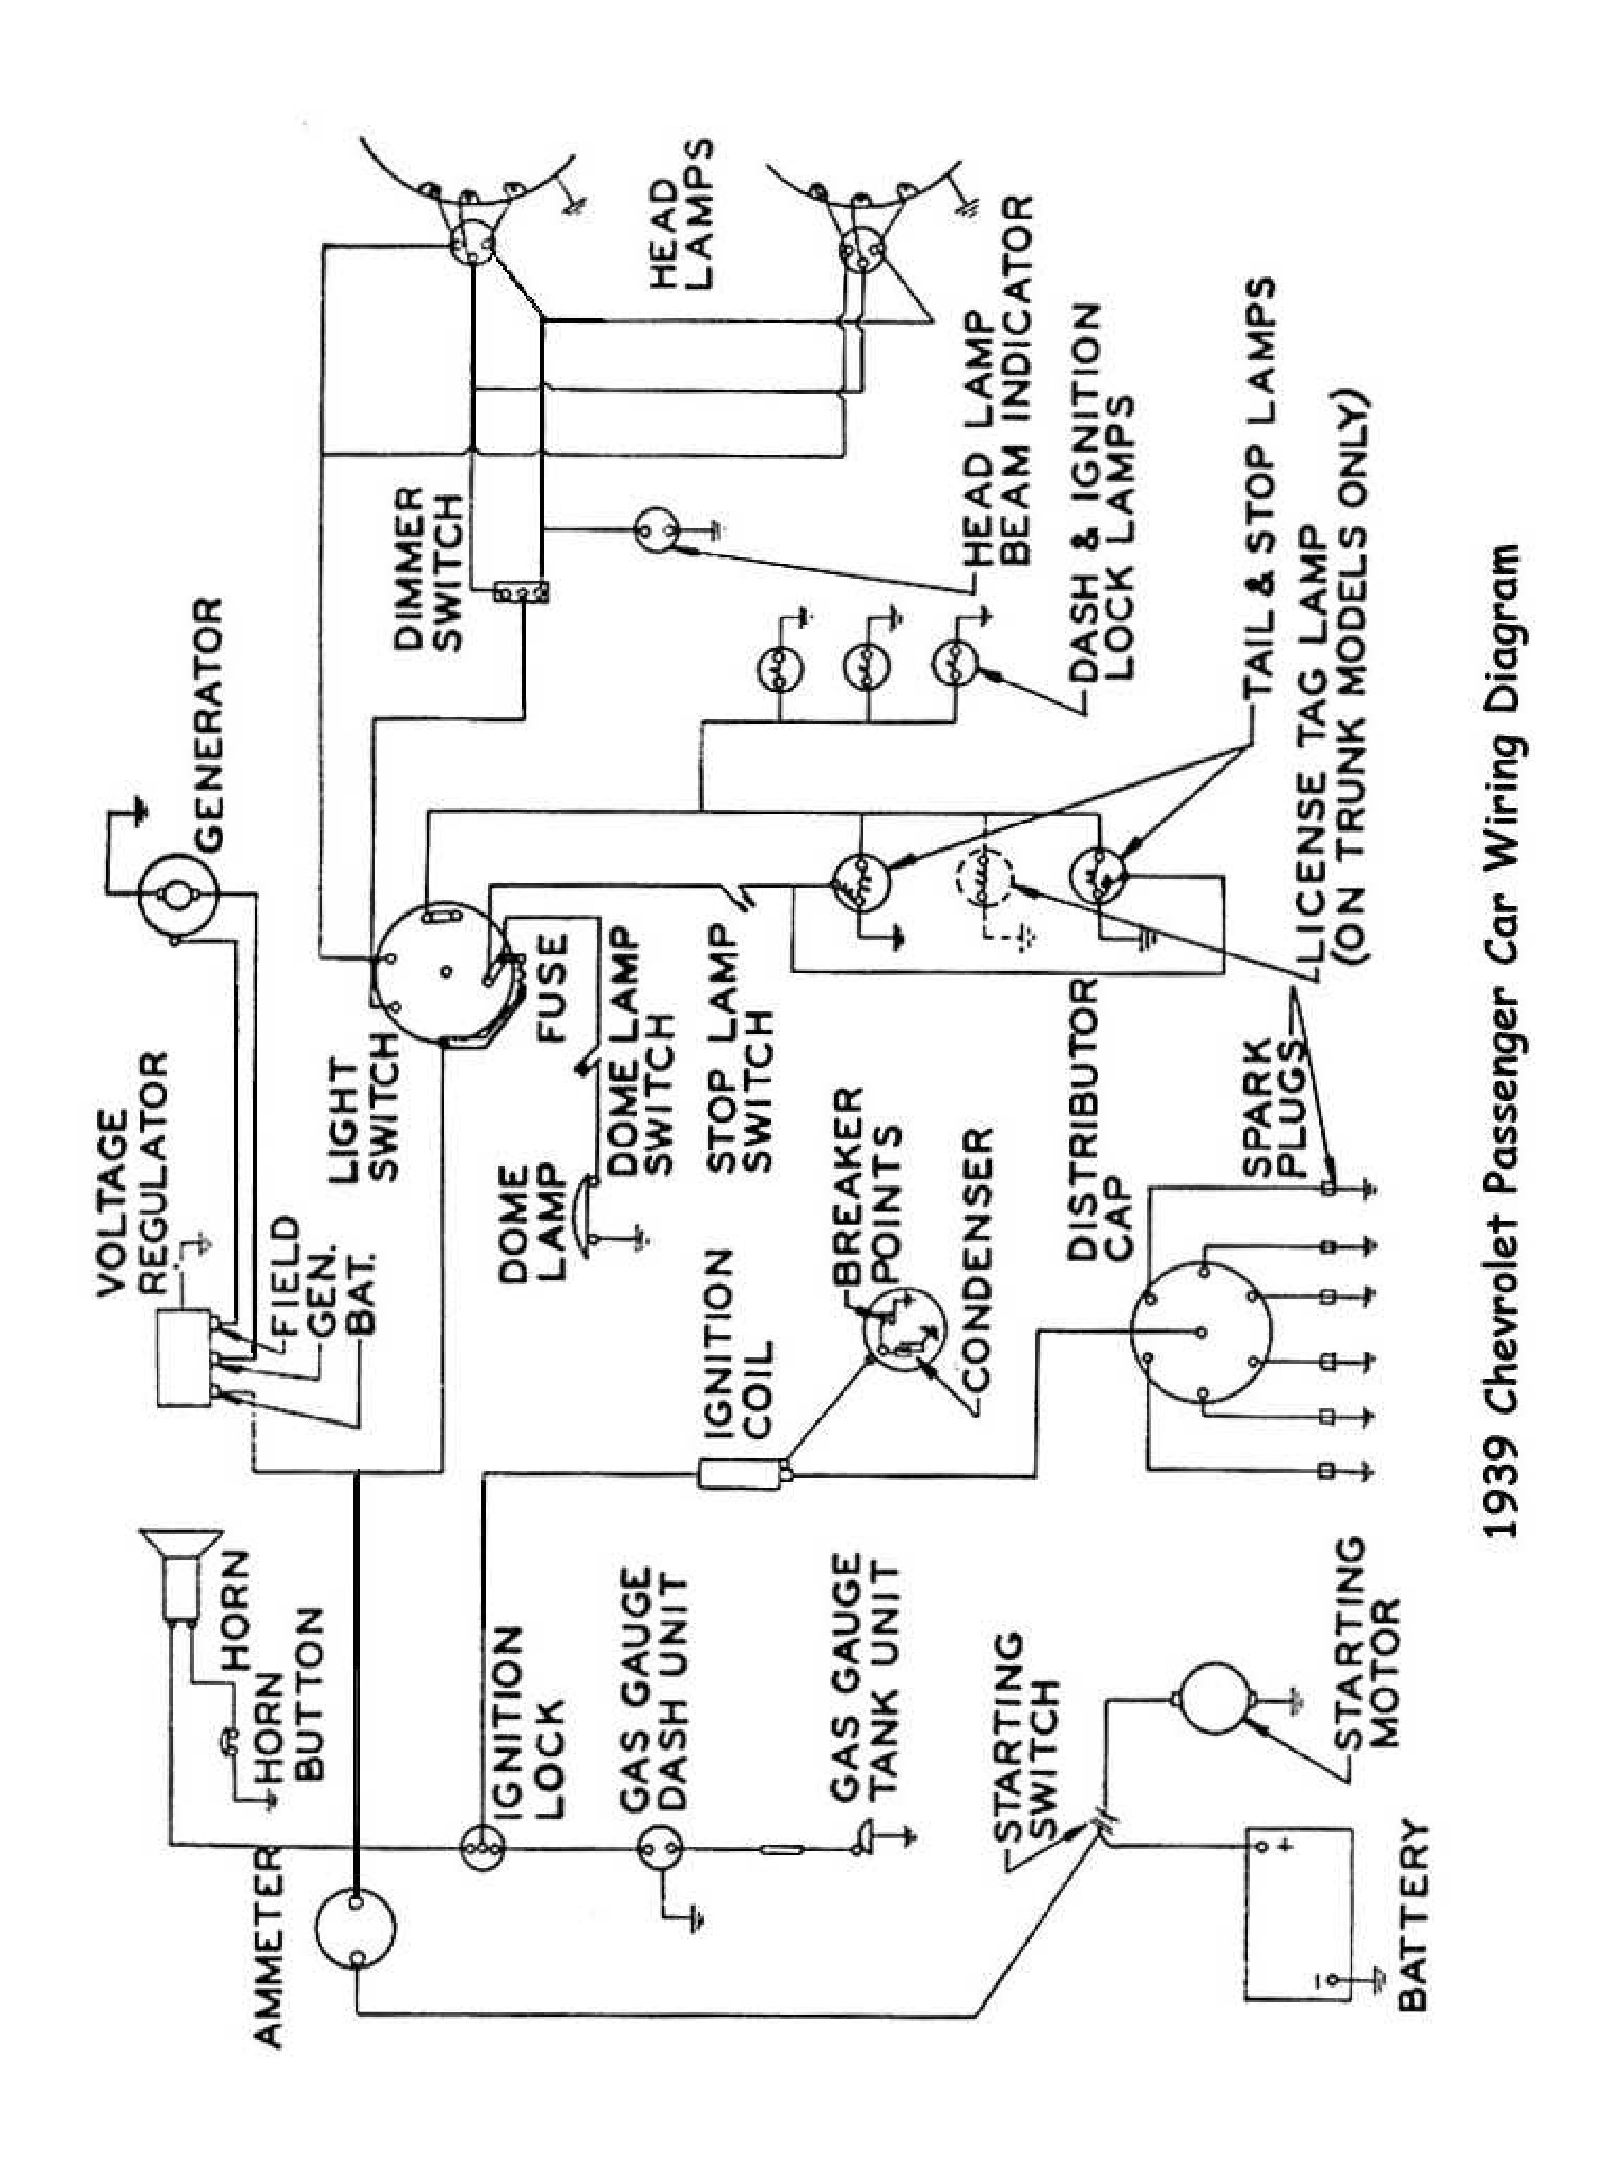 1942 Chevy Wiring Diagram moreover Wiring diagrams further Flathead Engine Color as well Flathead drawings electrical furthermore 87 Corvette Wiring Diagram. on 1940 chevy truck wiring diagrams